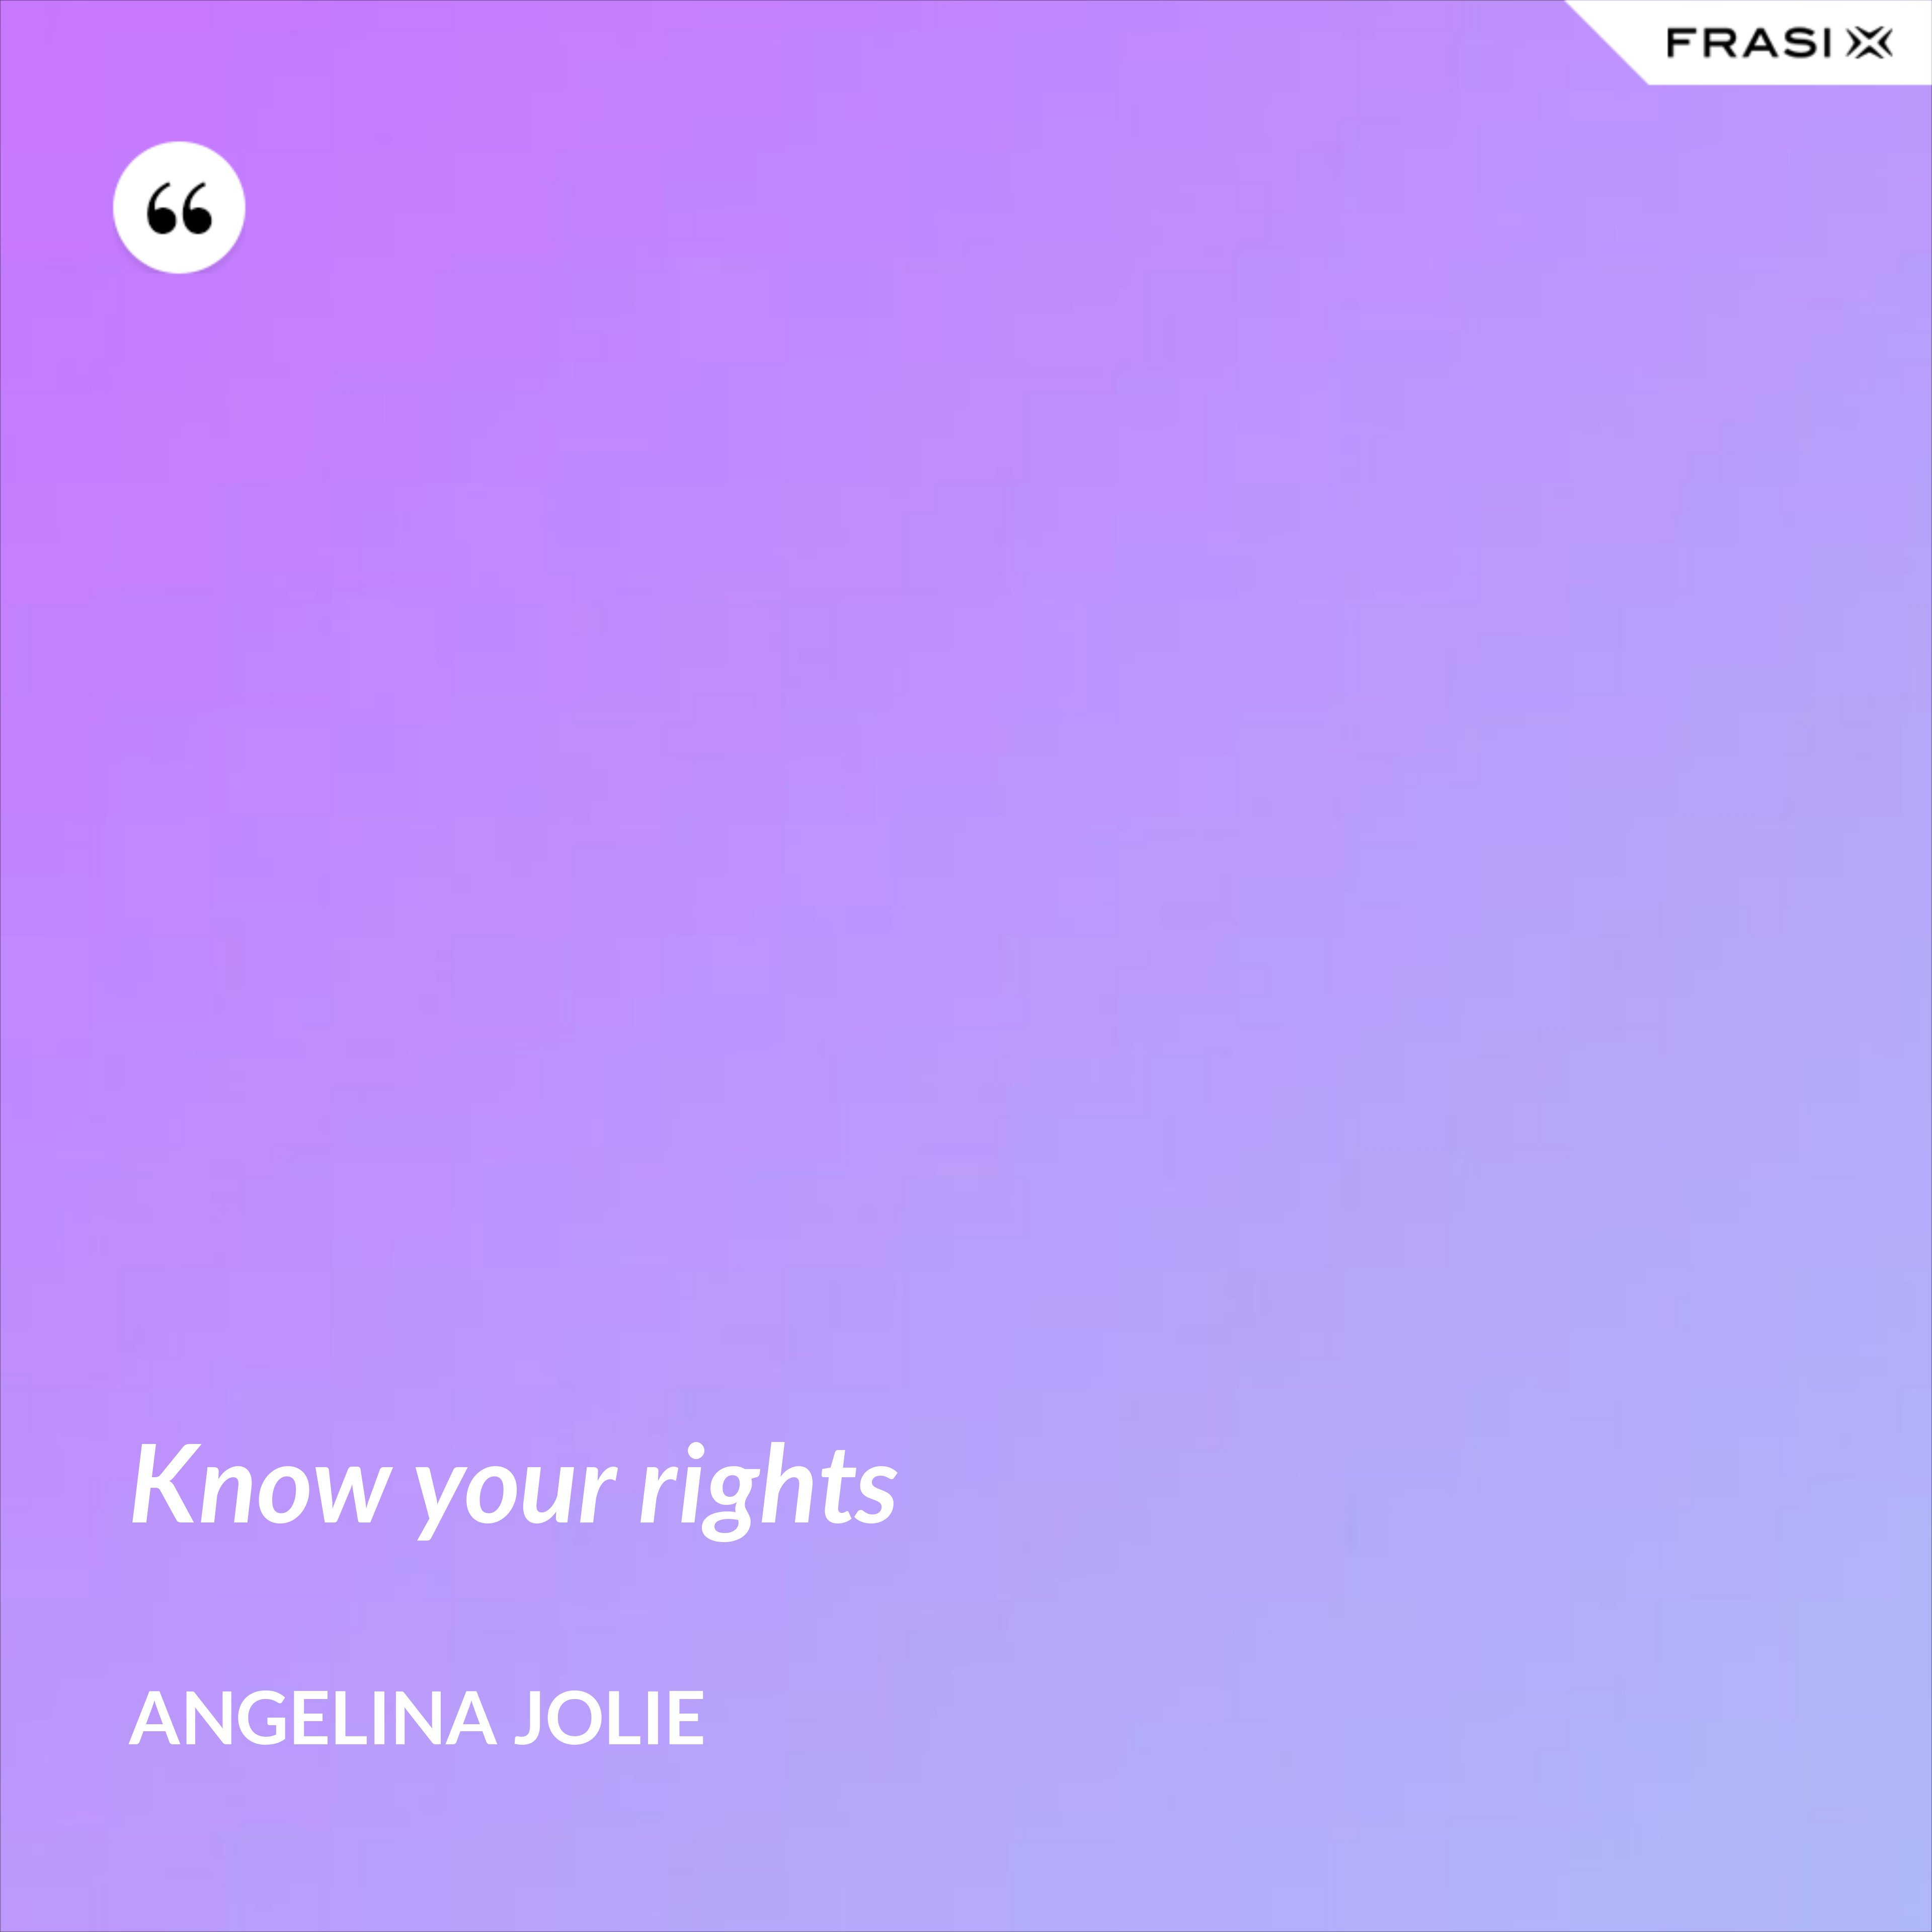 Know your rights - Angelina Jolie